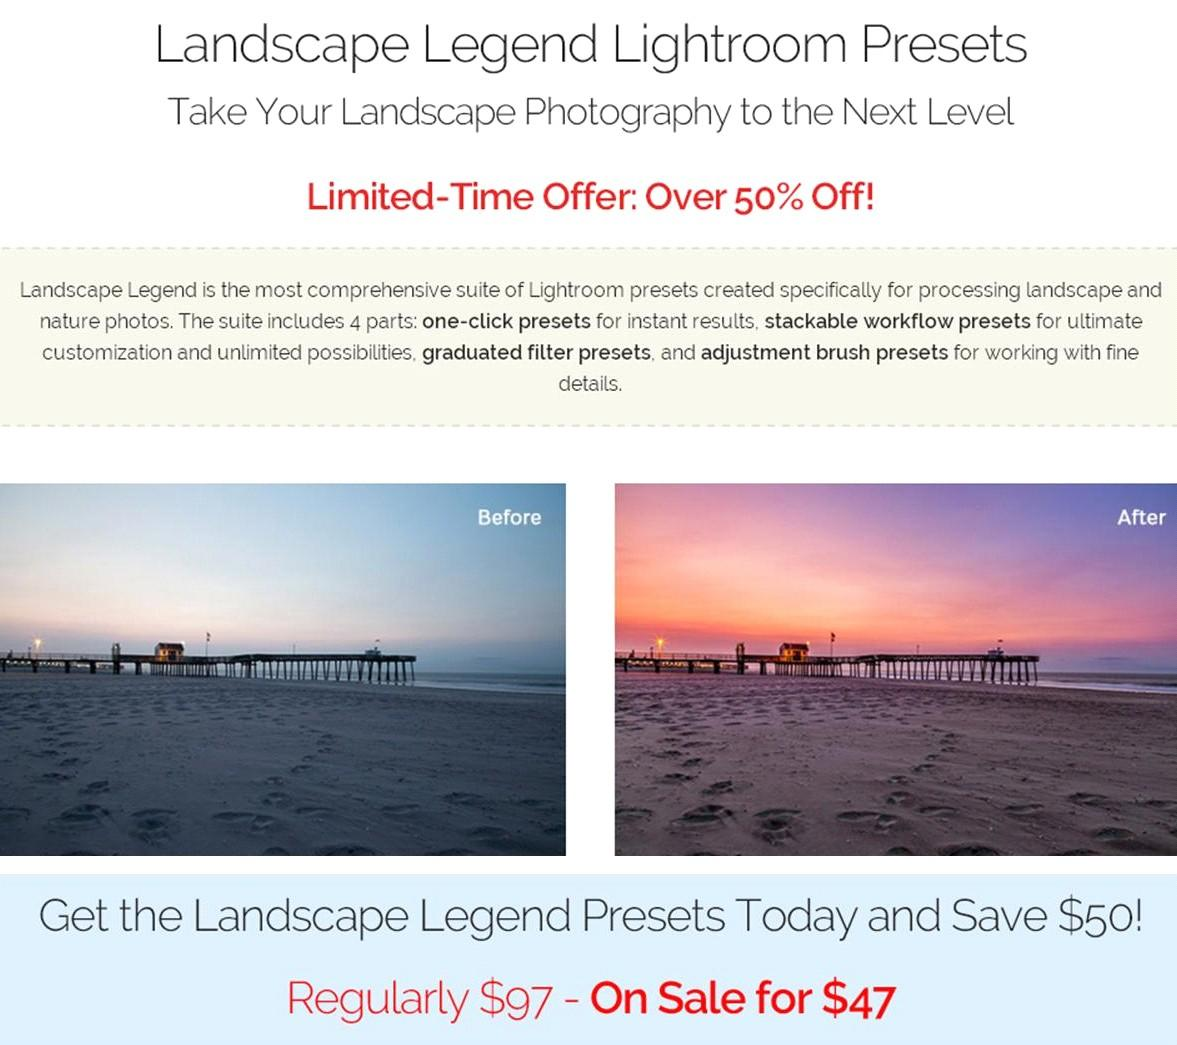 landscape-legend-lightroom-presets-for-awesome-nature-photography2